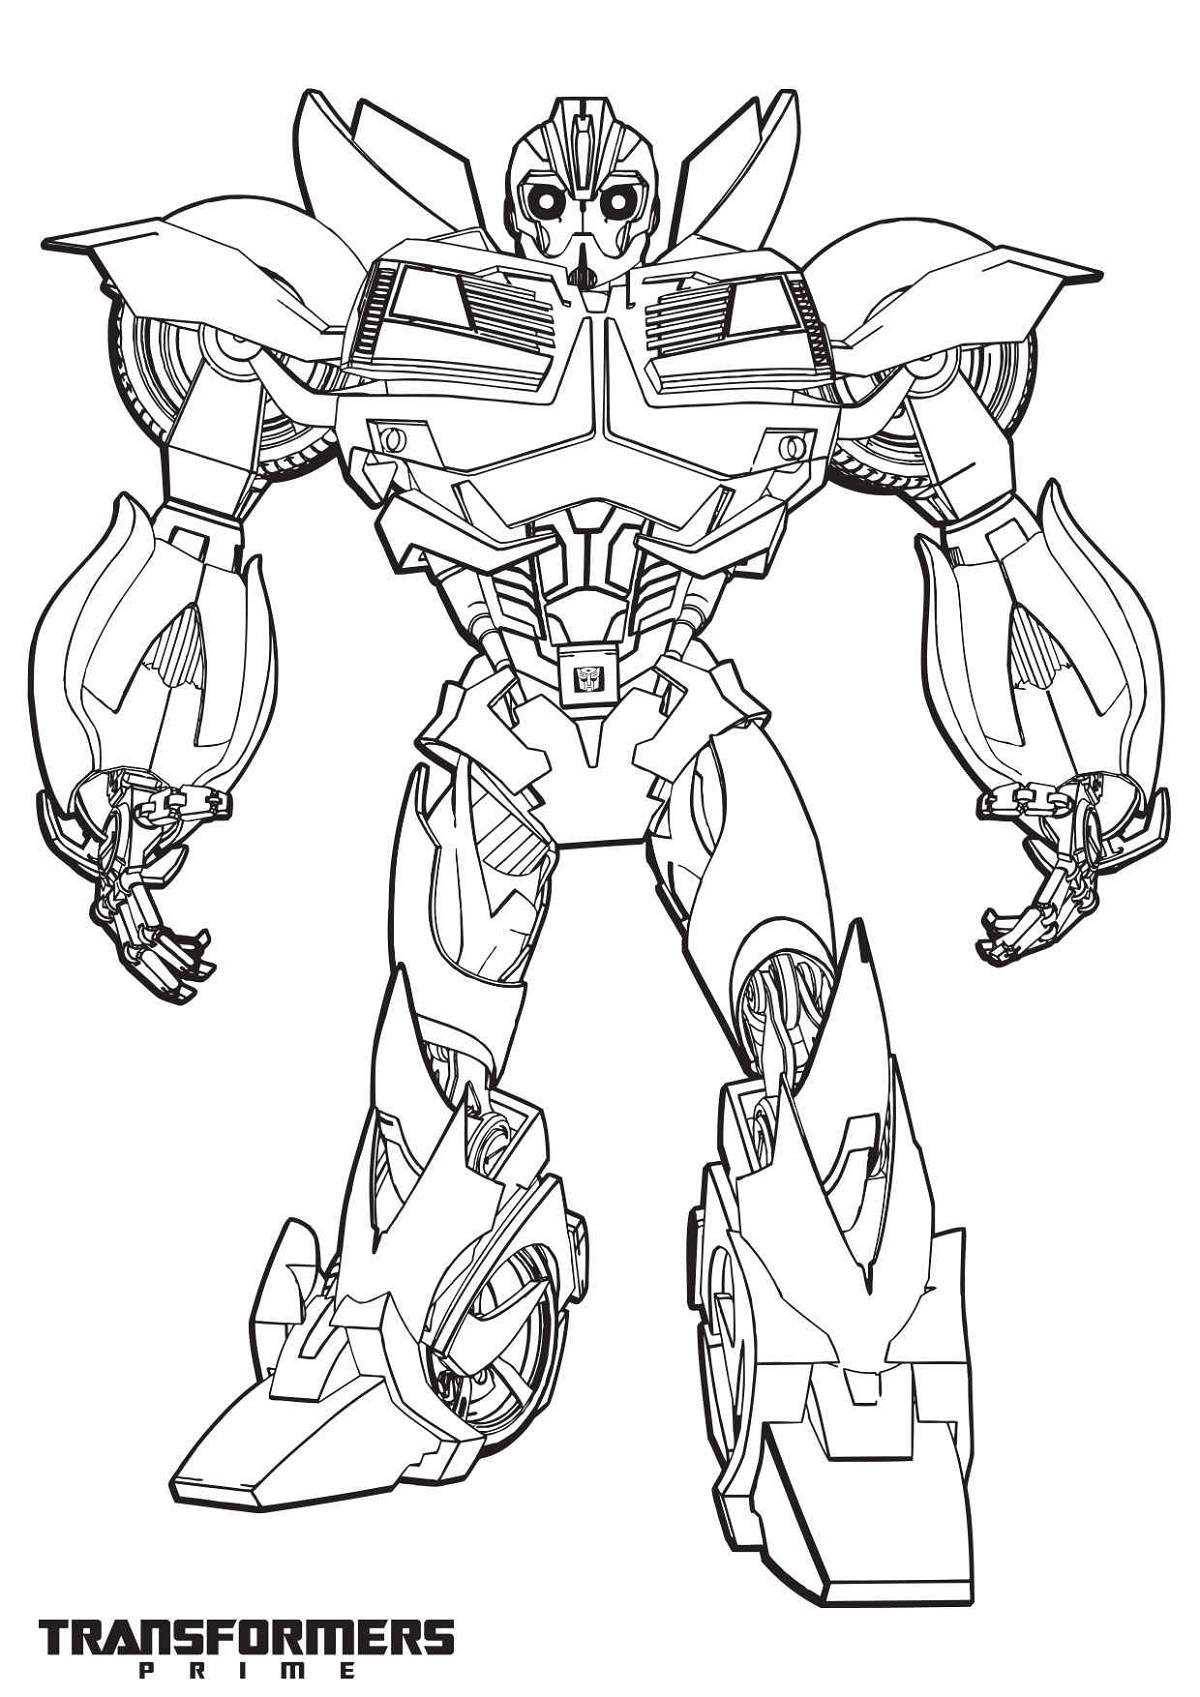 bumblebee transformer coloring page 1